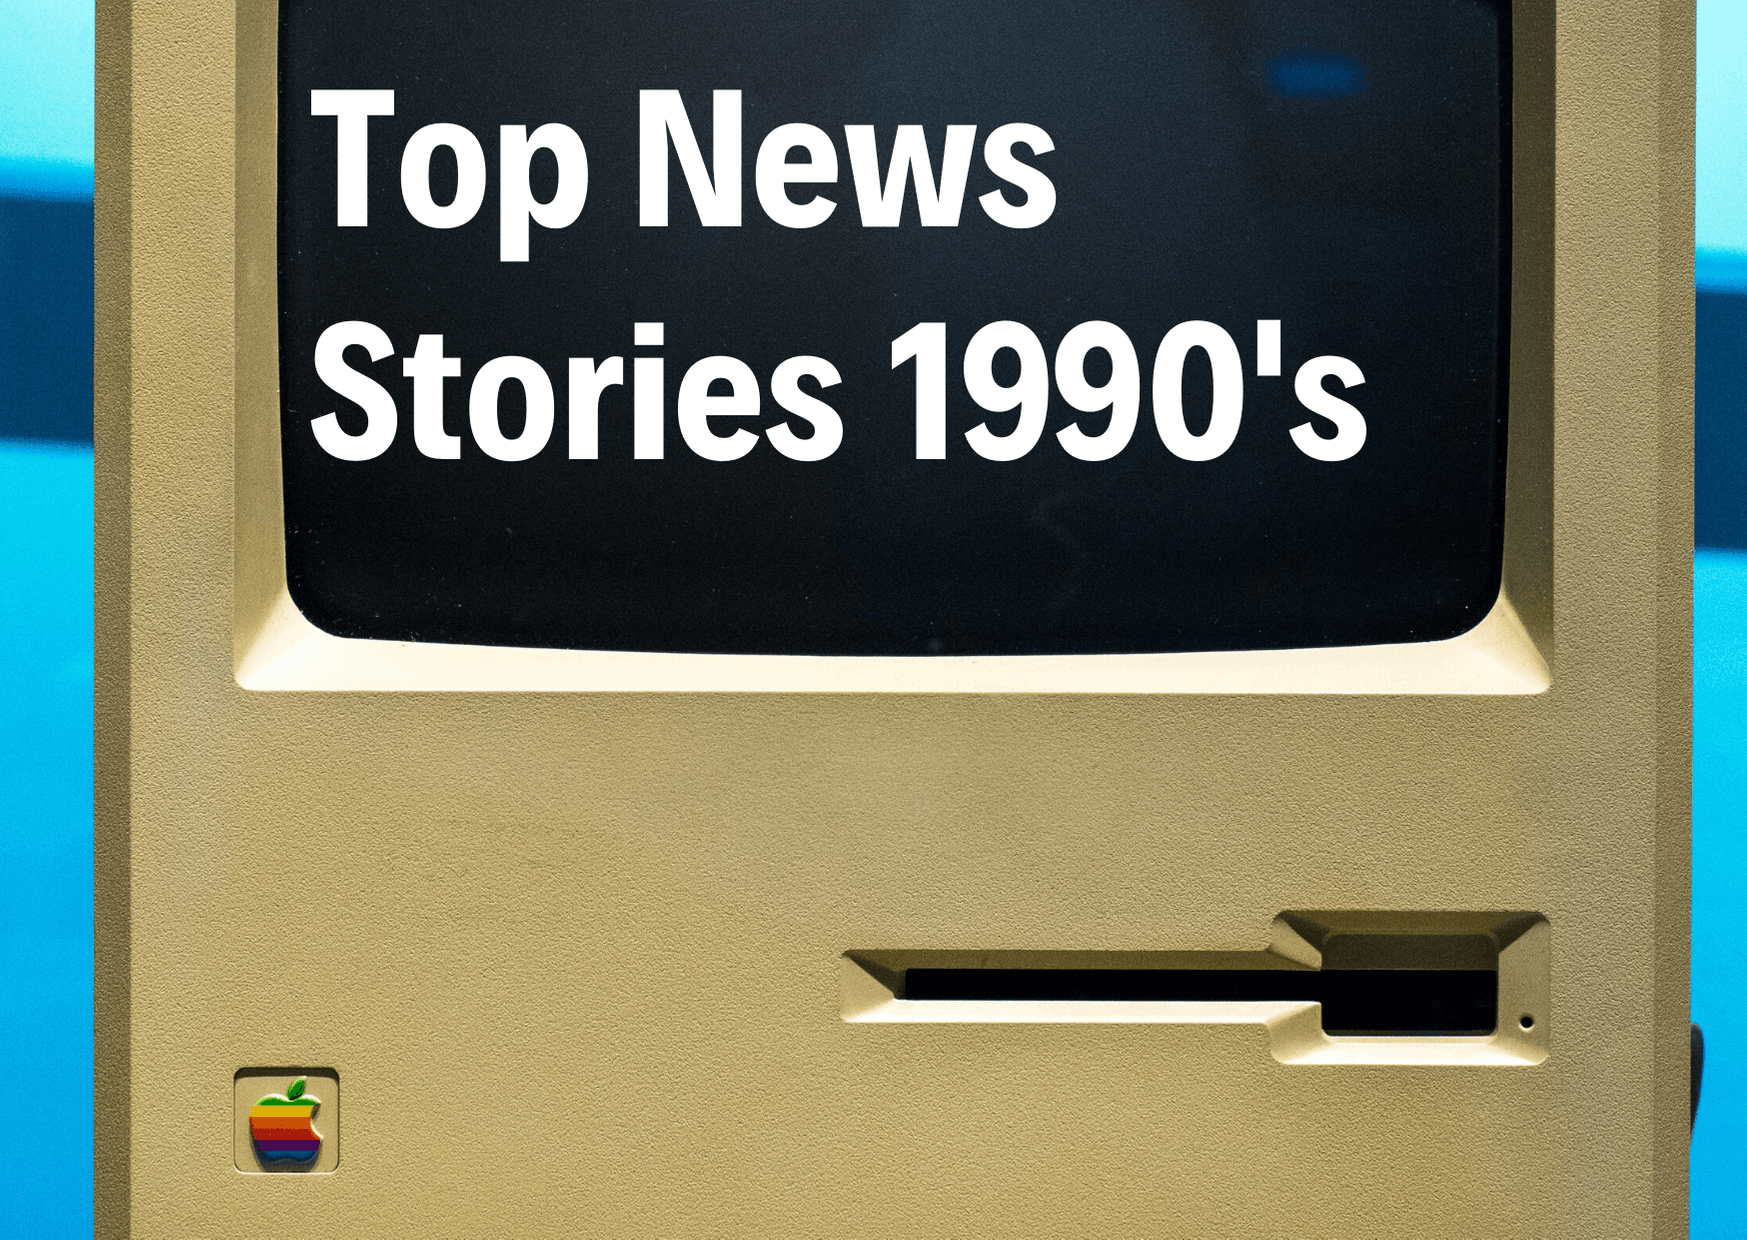 1990s News Opens in new window